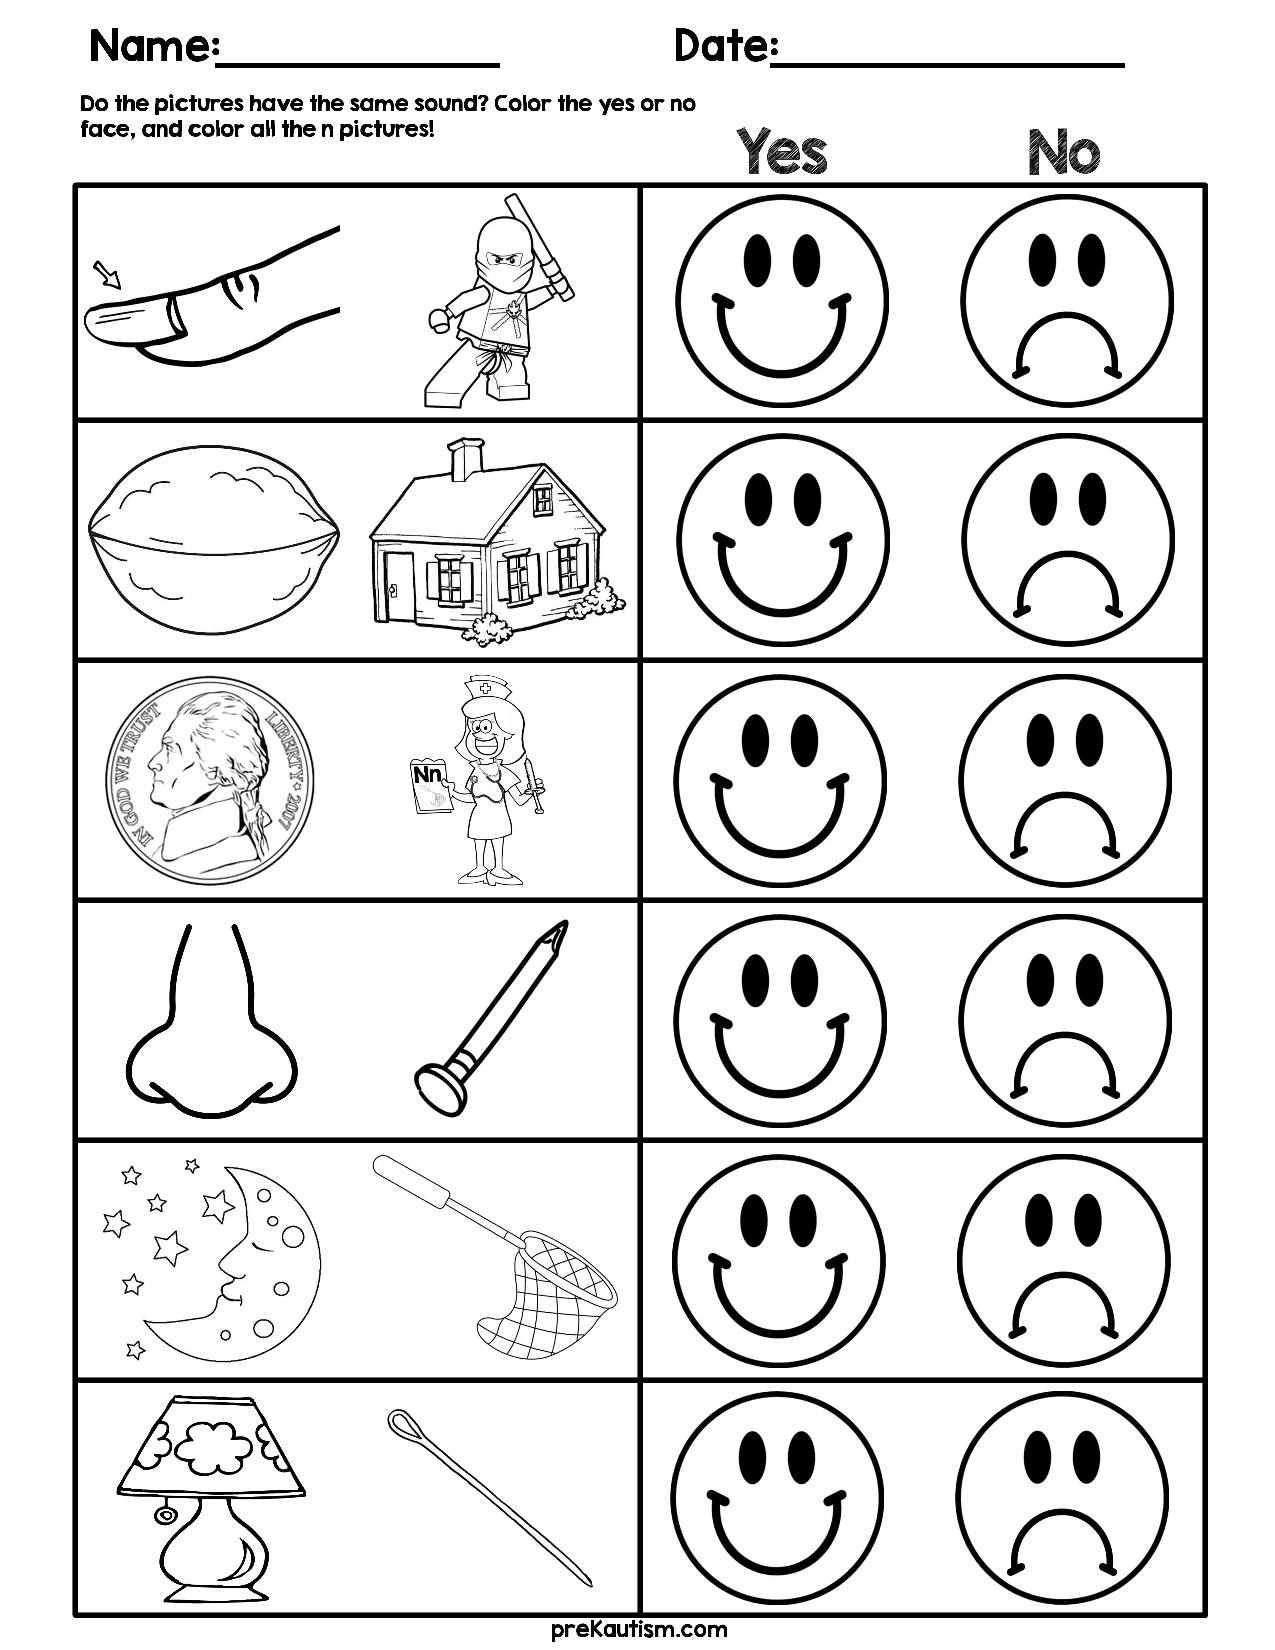 Consonant Sound Match Worksheets With Images